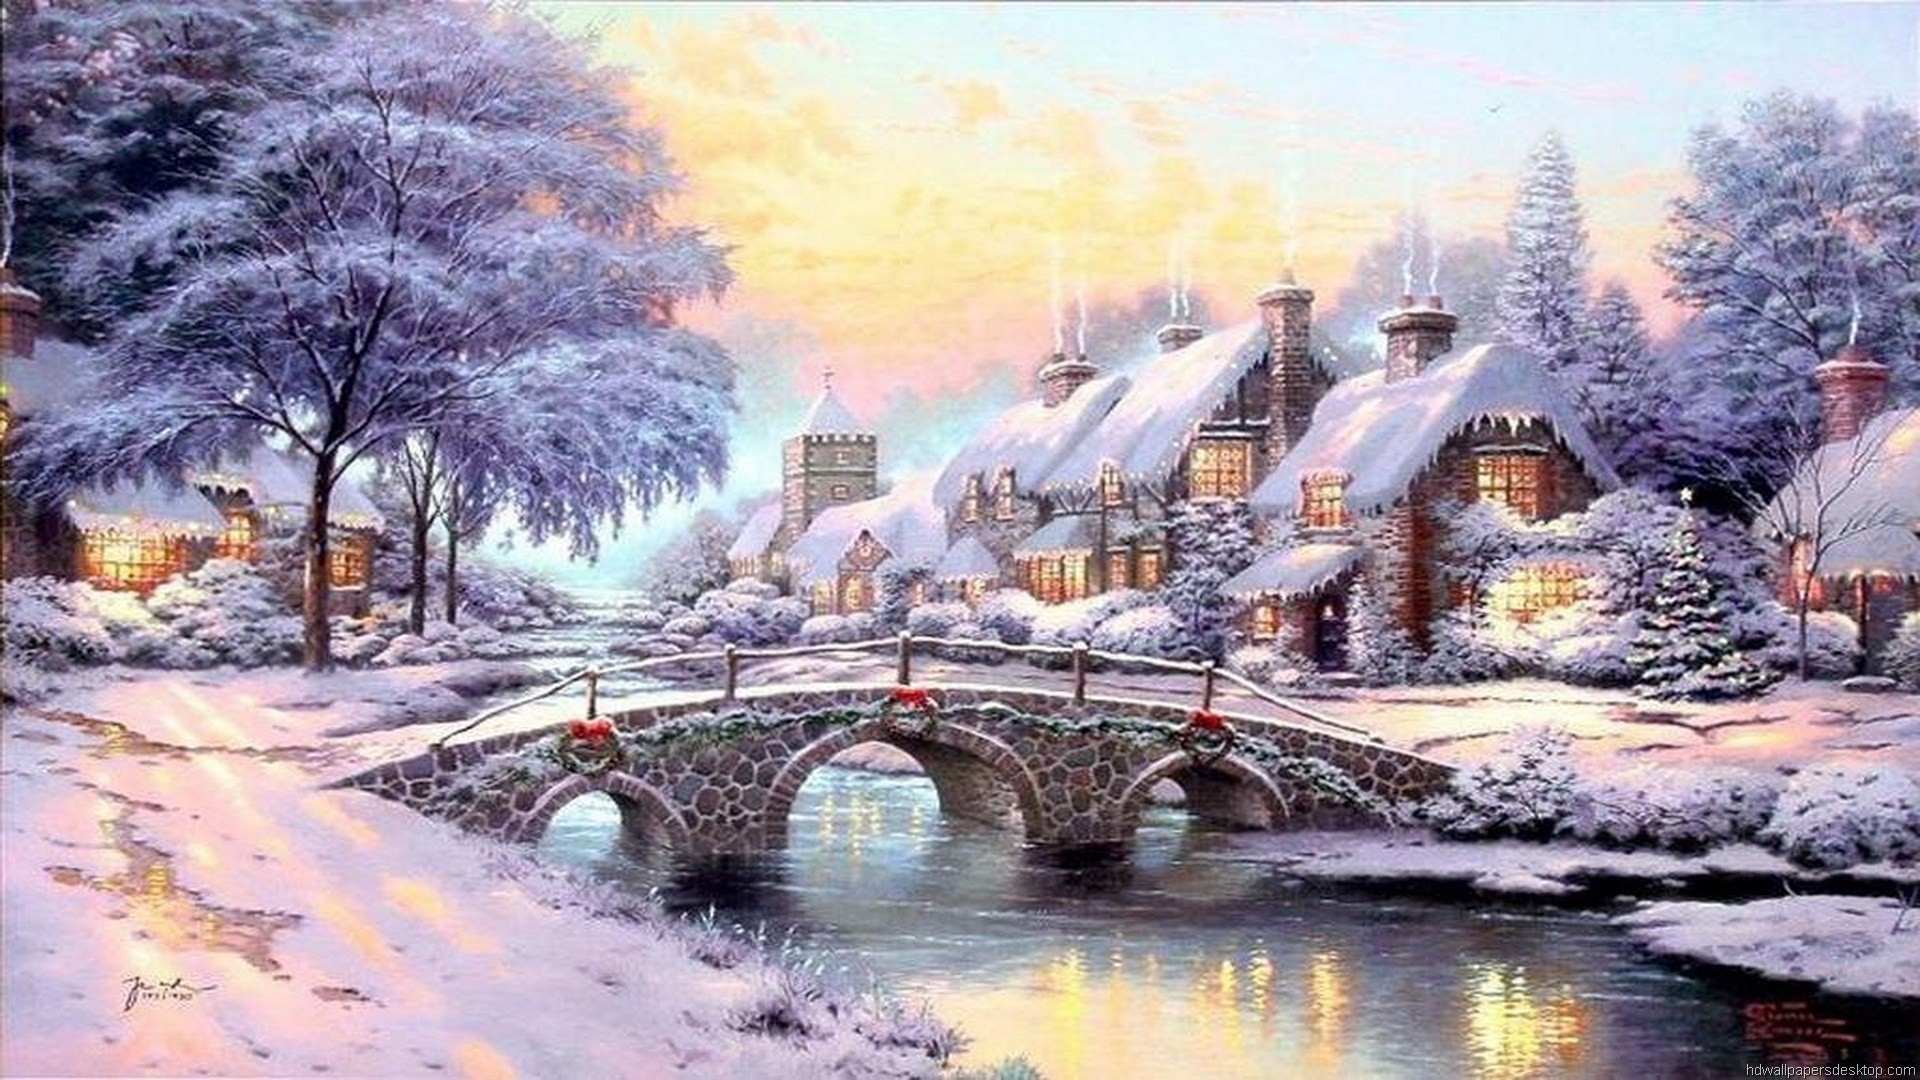 Awesome Thomas Kinkade Christmas Village Wallpaper Free download best  Latest 3D HD desktop wallpapers background Wide